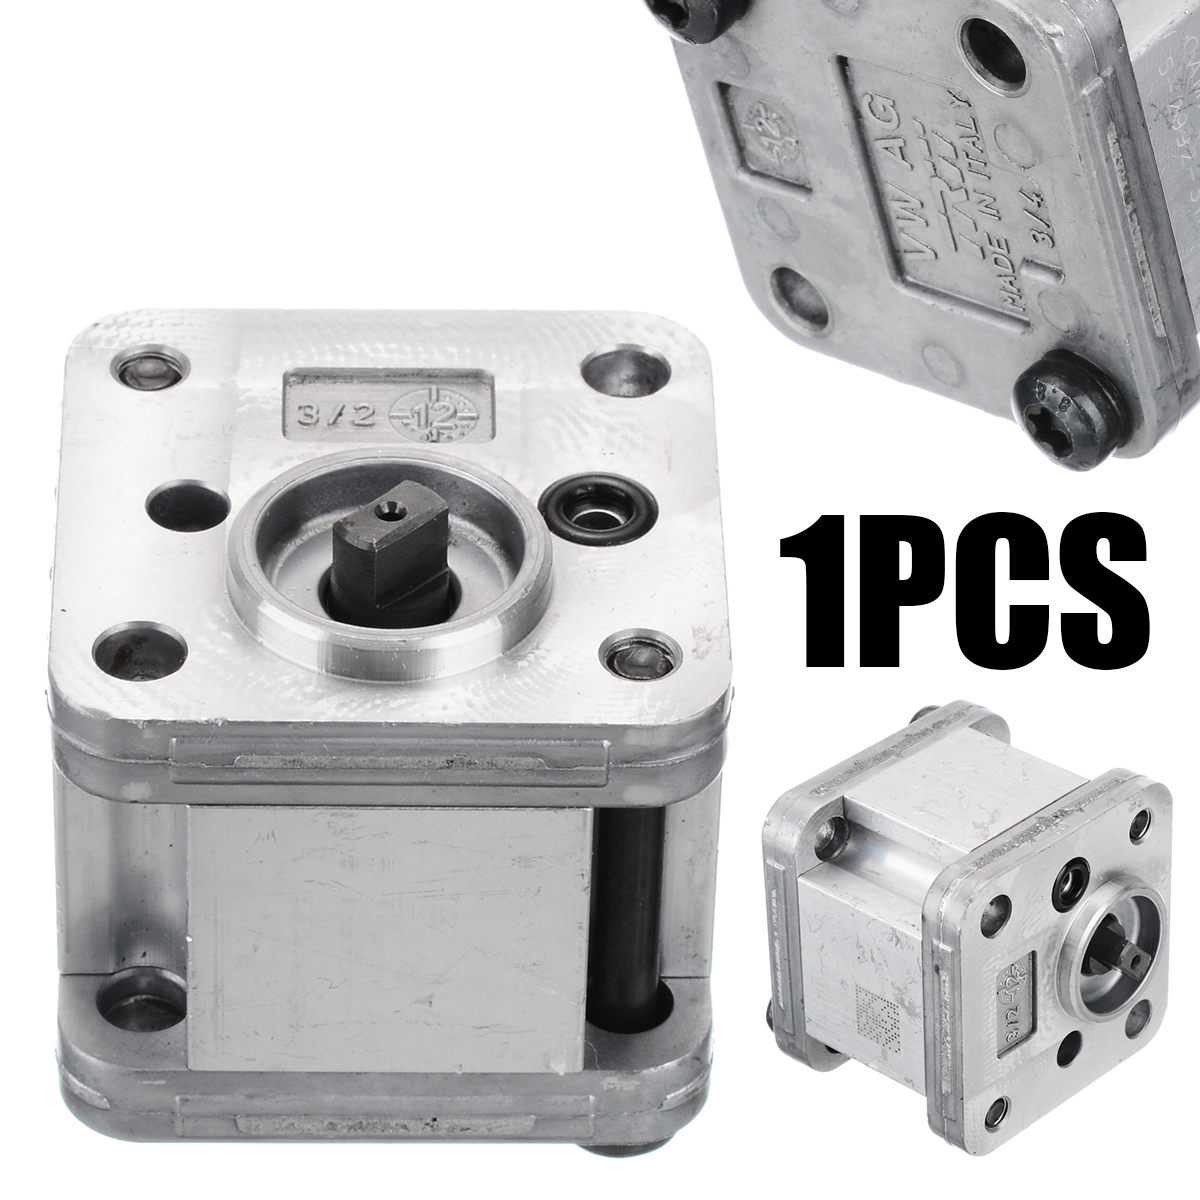 New Hydraulic Gear Pump Metal Gear Pump Hydraulic Model Excavating Machinery For Pumps Parts Accessories